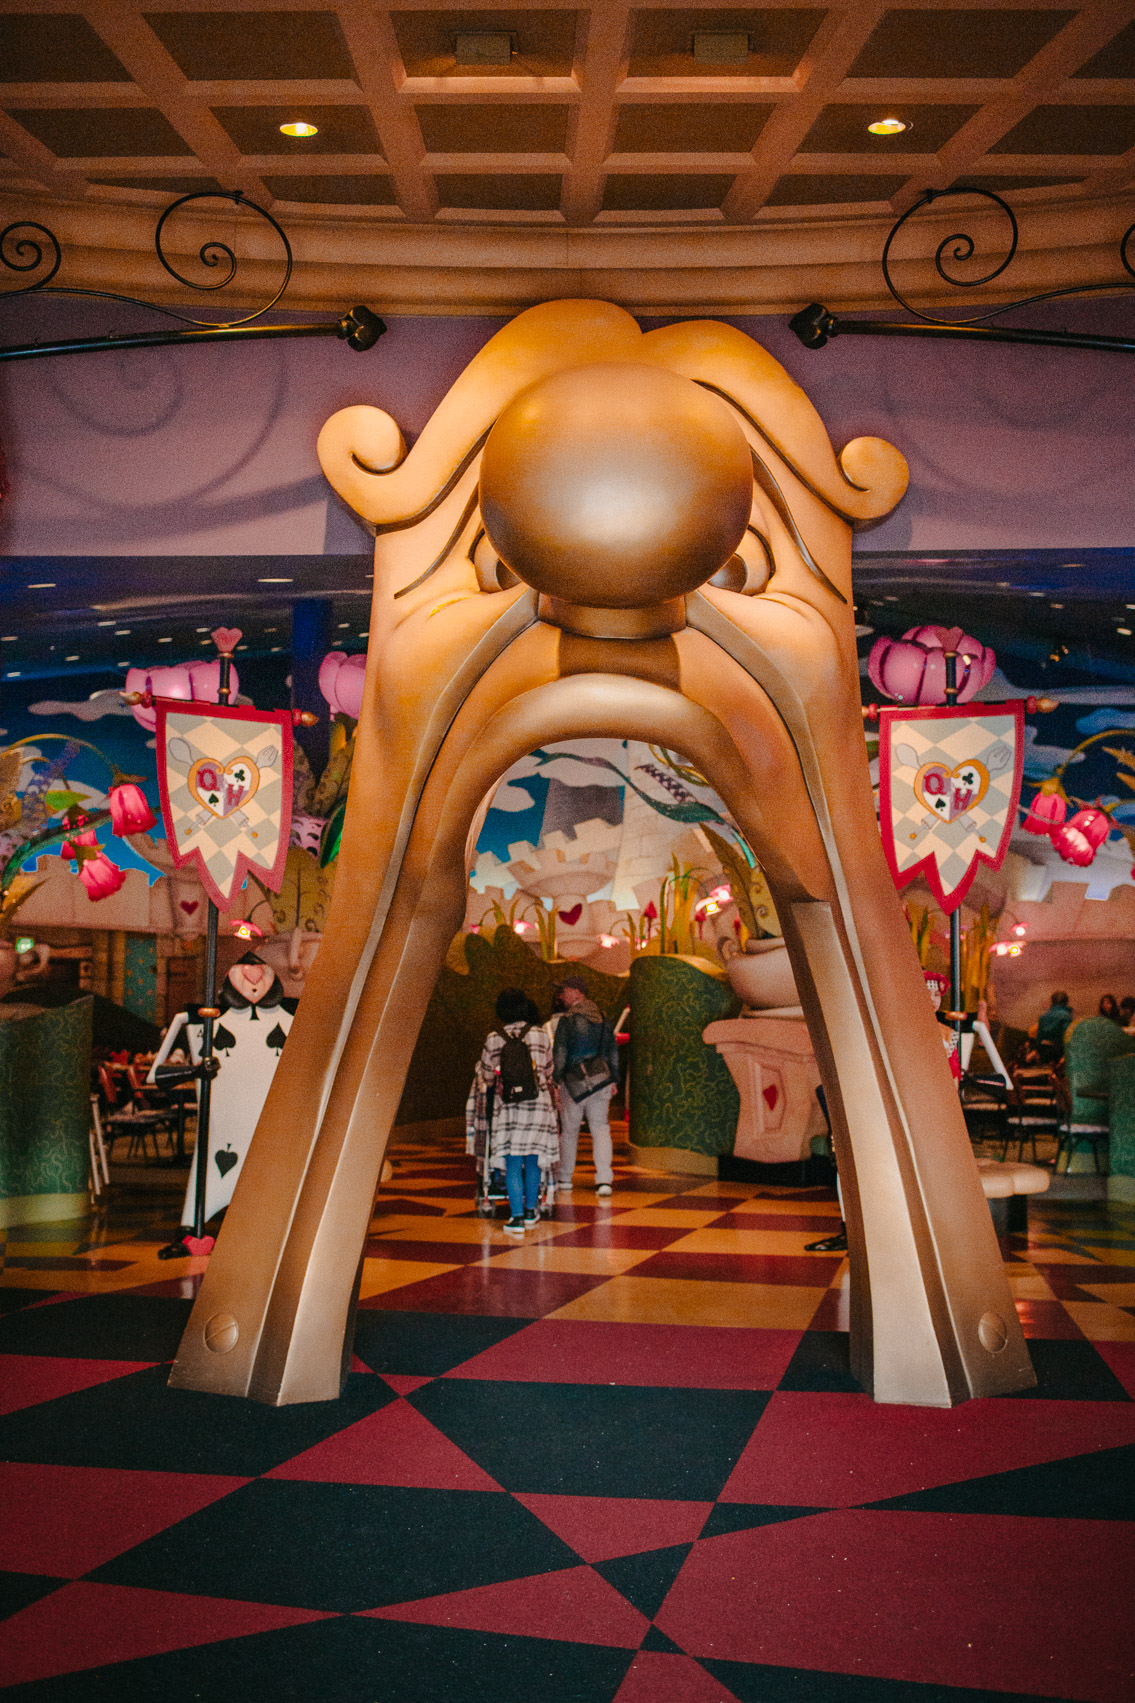 Tokyo Disneyland Queen of Hearts Banquet Hall - The cat, you and us